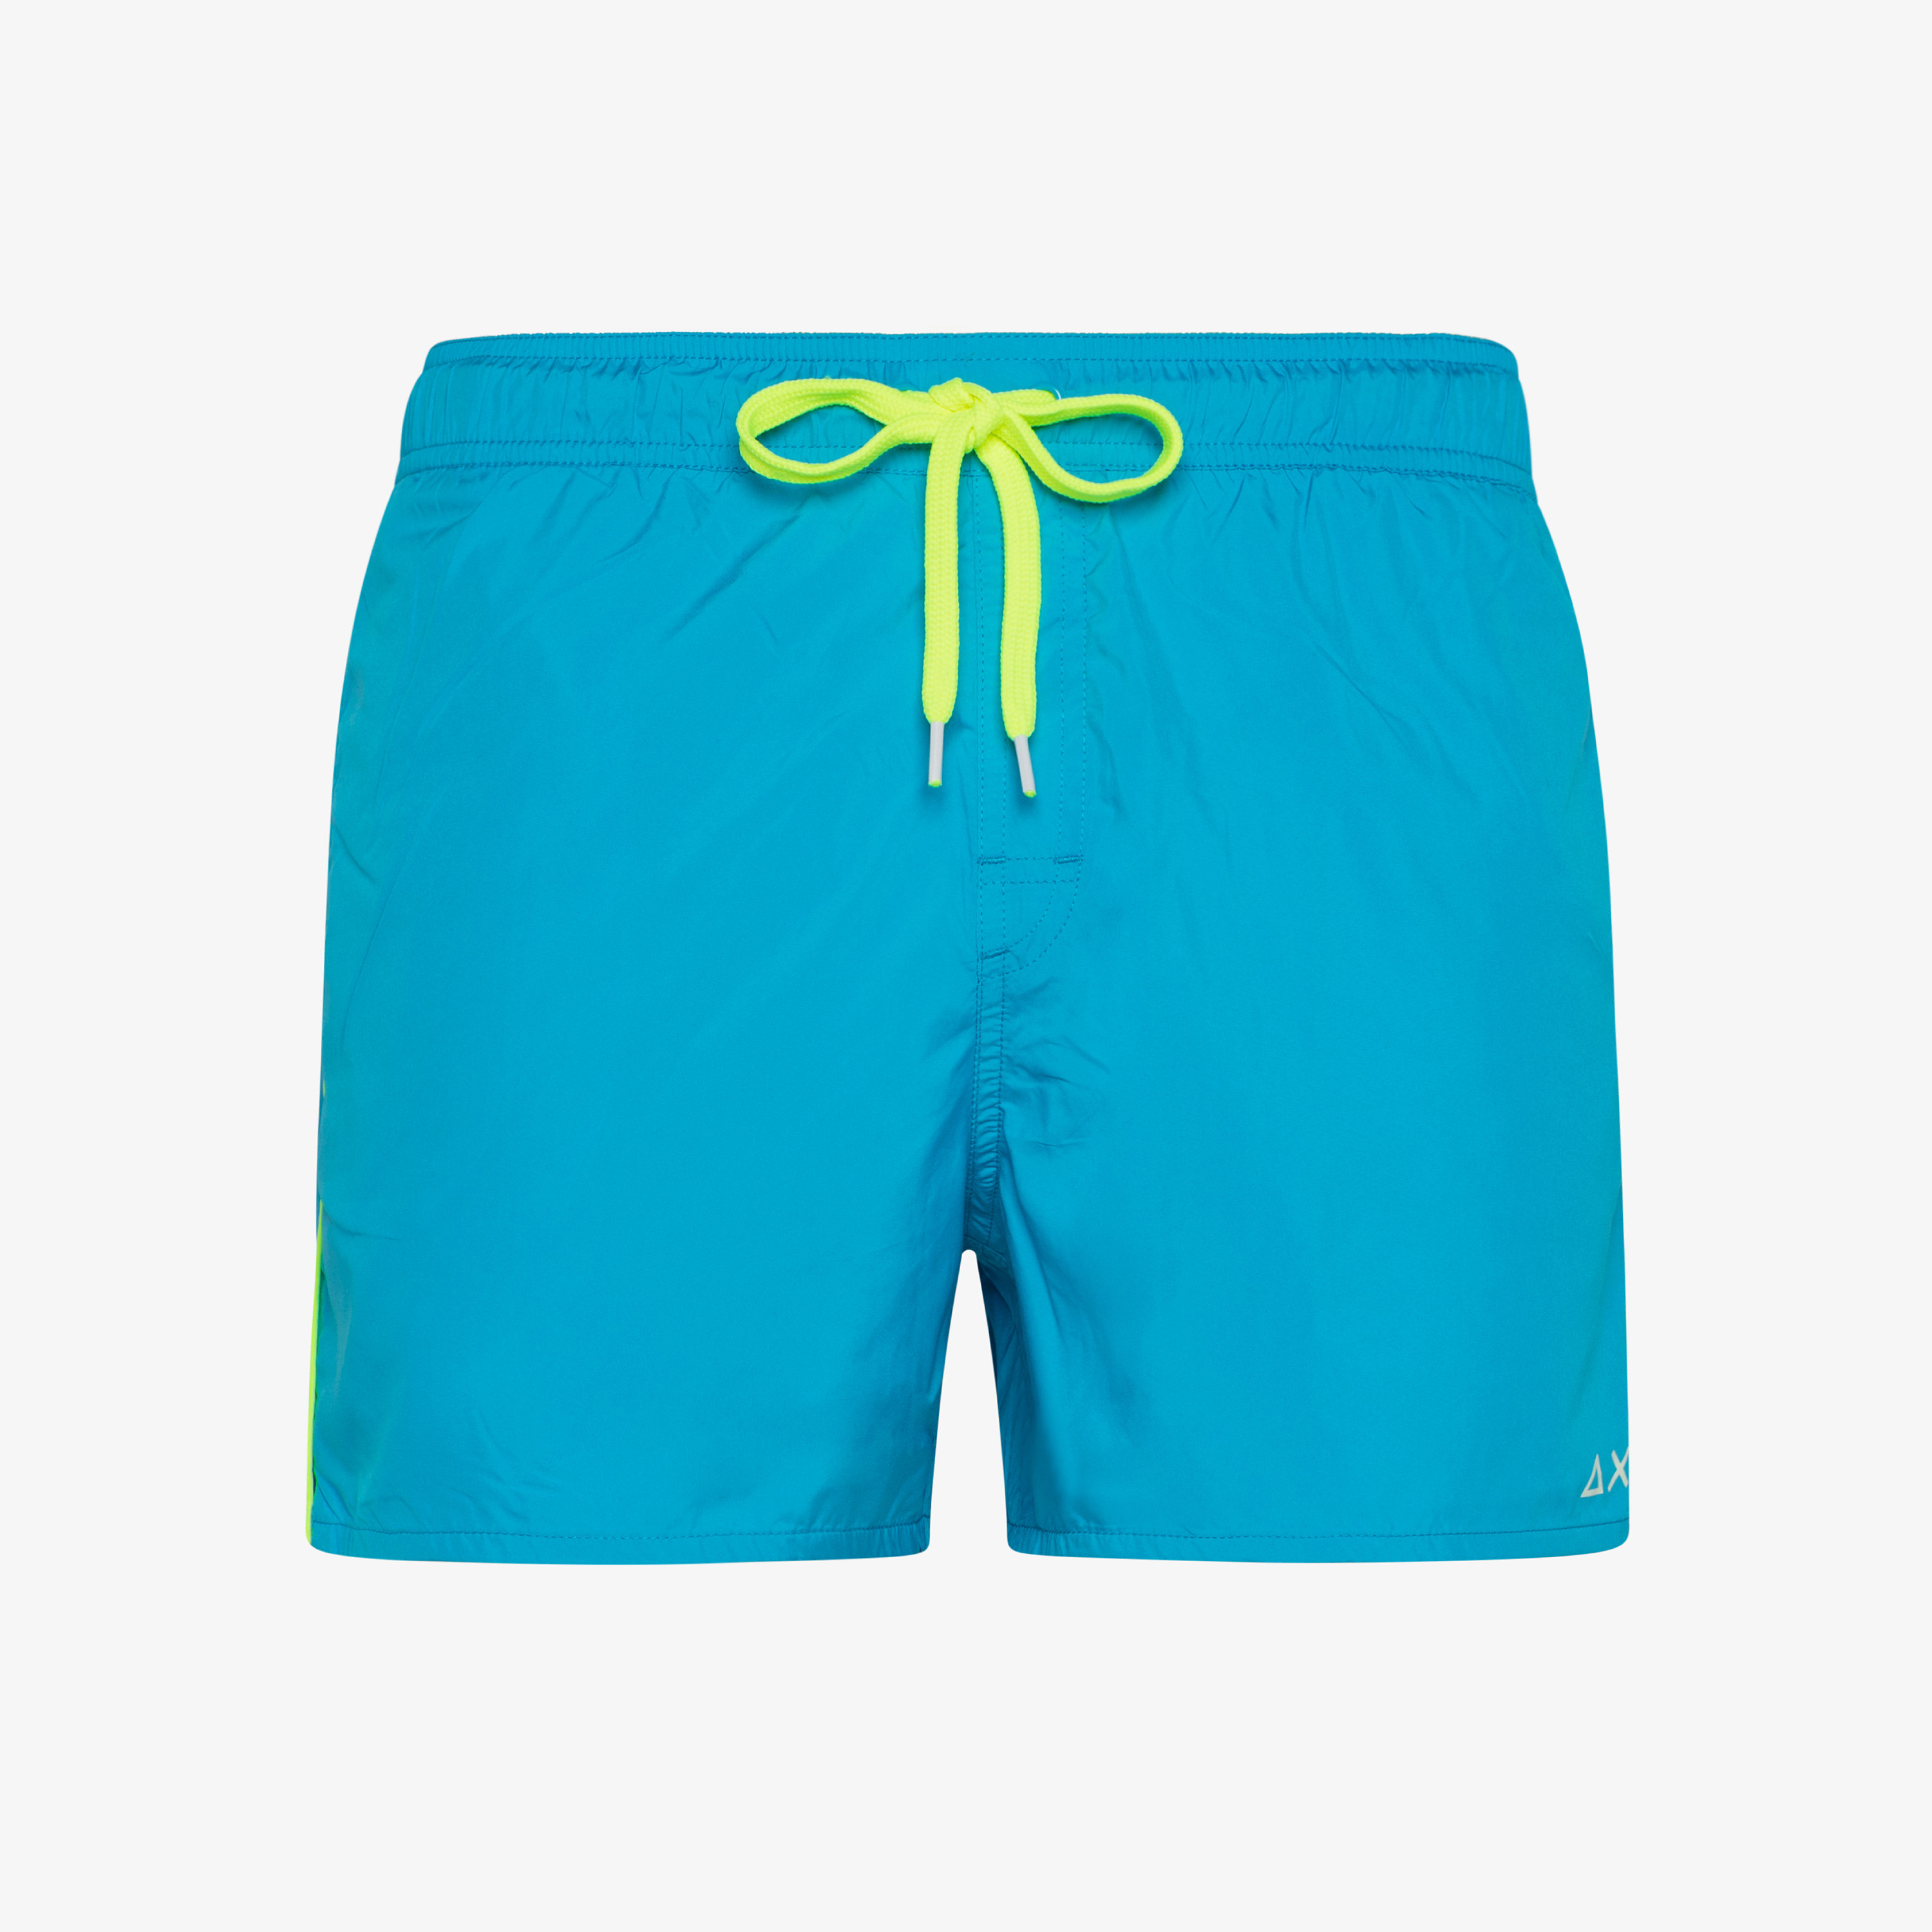 SWIM PANT WATER PRINT BLUE FLUO